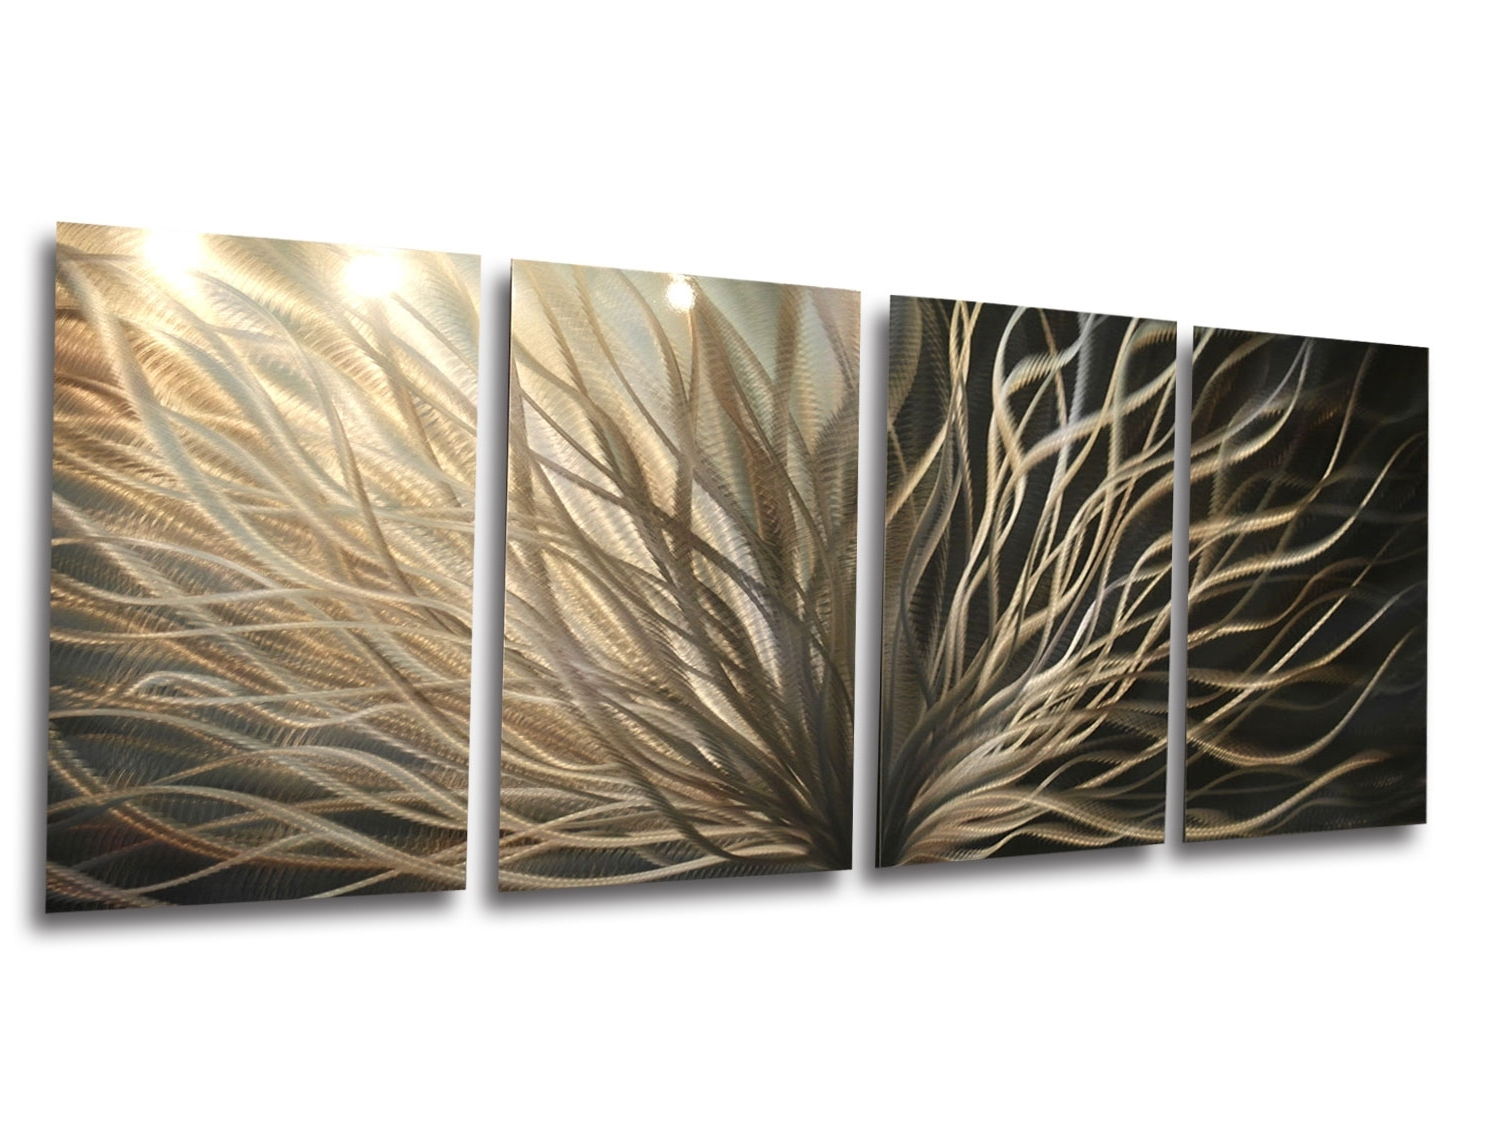 Widely Used Abstract Metal Wall Art  Radiance Gold Silver  Contemporary Modern With Silver And Gold Wall Art (View 15 of 15)